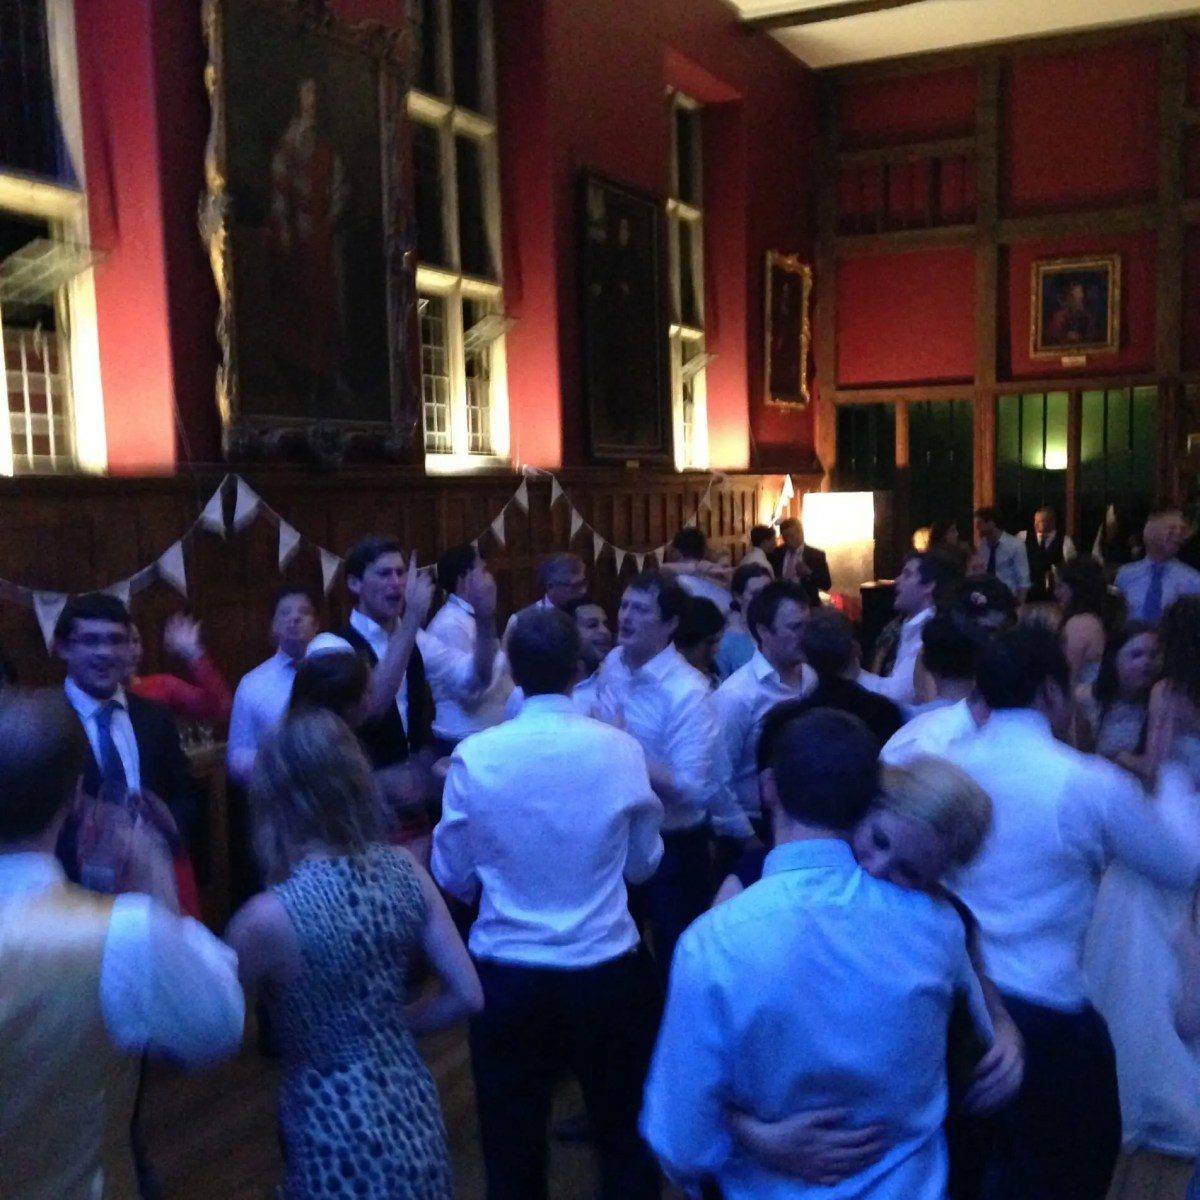 The Zoots band, The Zoots perform at Jenny & Alan's wedding, Cambridge University, Cambridge, Band in Cambridge, Band in Berkshire, Band in Wiltshire, Party band for Hire, Live music South West, Band in Bristol, Wedding Band South West, The Zoots wedding band, Wedding bands in Wiltshire, Wedding band in Dorset, Wedding bands in The South West, Party Band, 60s band, 1960s band, Wedding music, Band for NYE, bands in Wiltshire, Party Band South West, New Years Eve Band, Band for my Party 1960s band, 60s tribute, Band in Bristol, Wedding Band South West, Band in Somerset, Band in Berkshire, Wedding Band Buckinghamshire, Wedding Band Oxford,